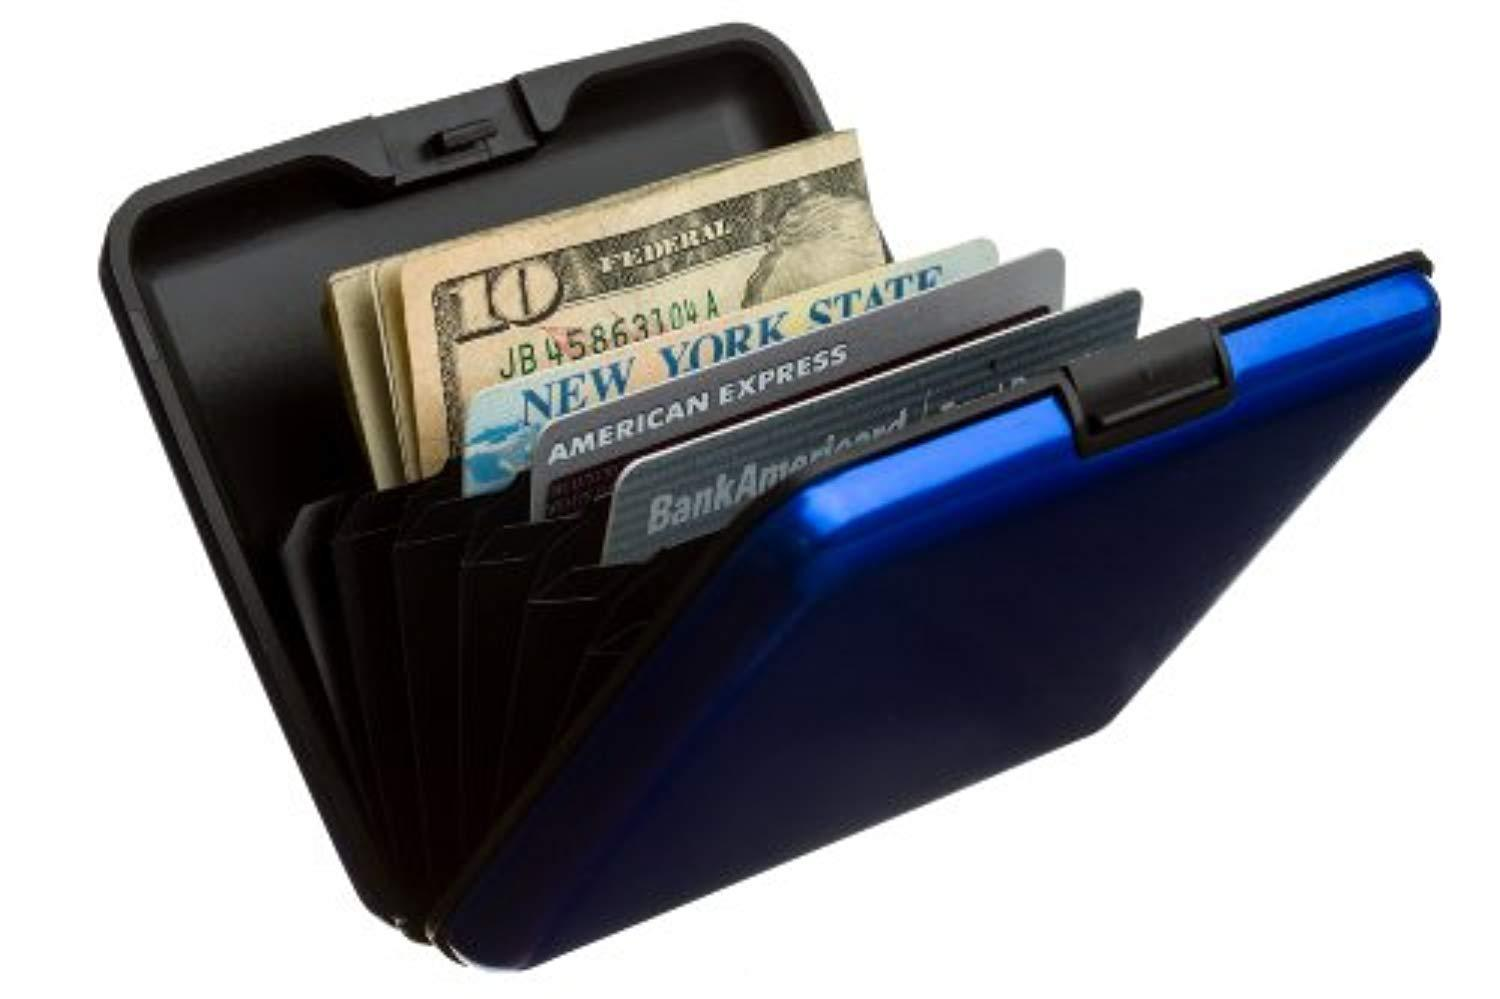 Black SHARKK LARGE Aluminum Wallet Credit Card Holder With RFID Protection